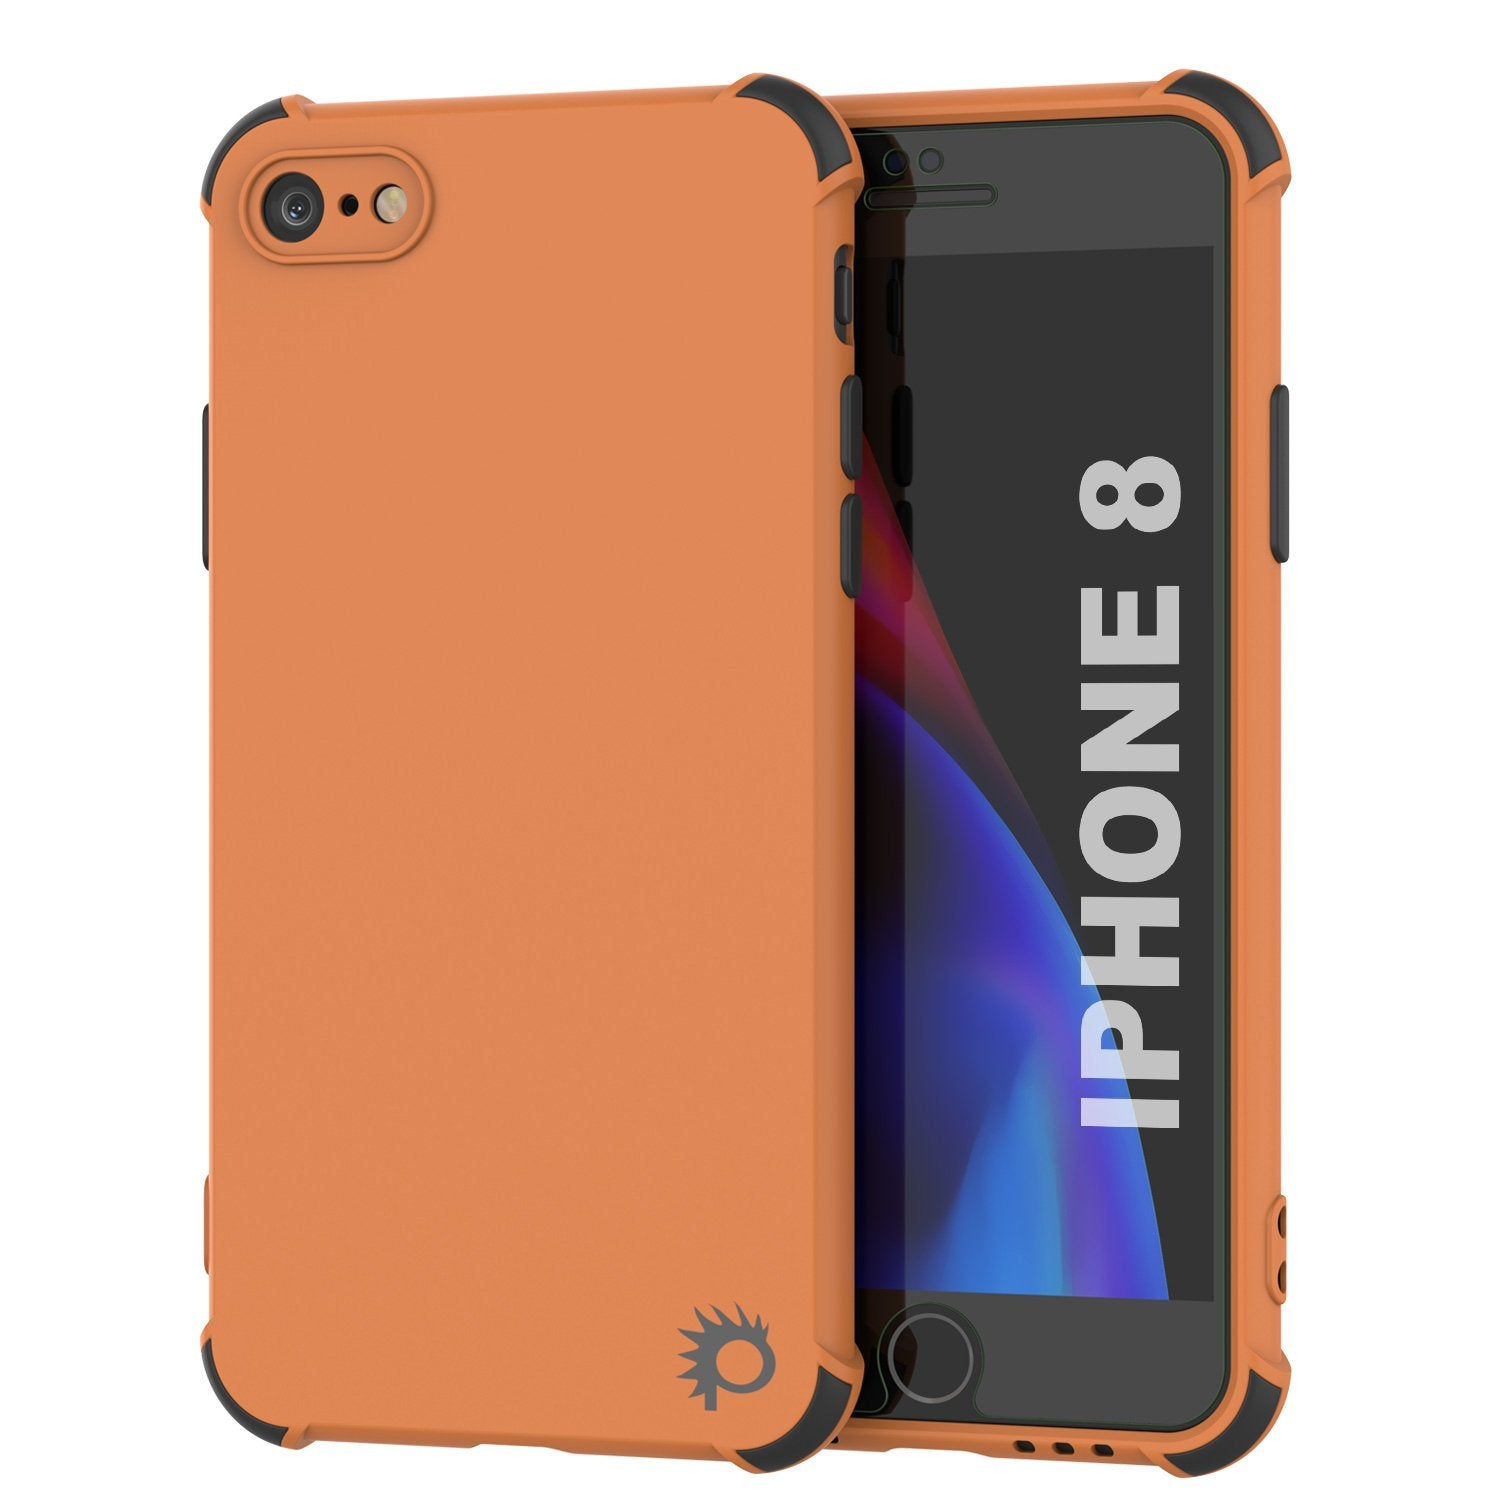 Punkcase Protective & Lightweight TPU Case [Sunshine Series] for iPhone 8 [Orange]